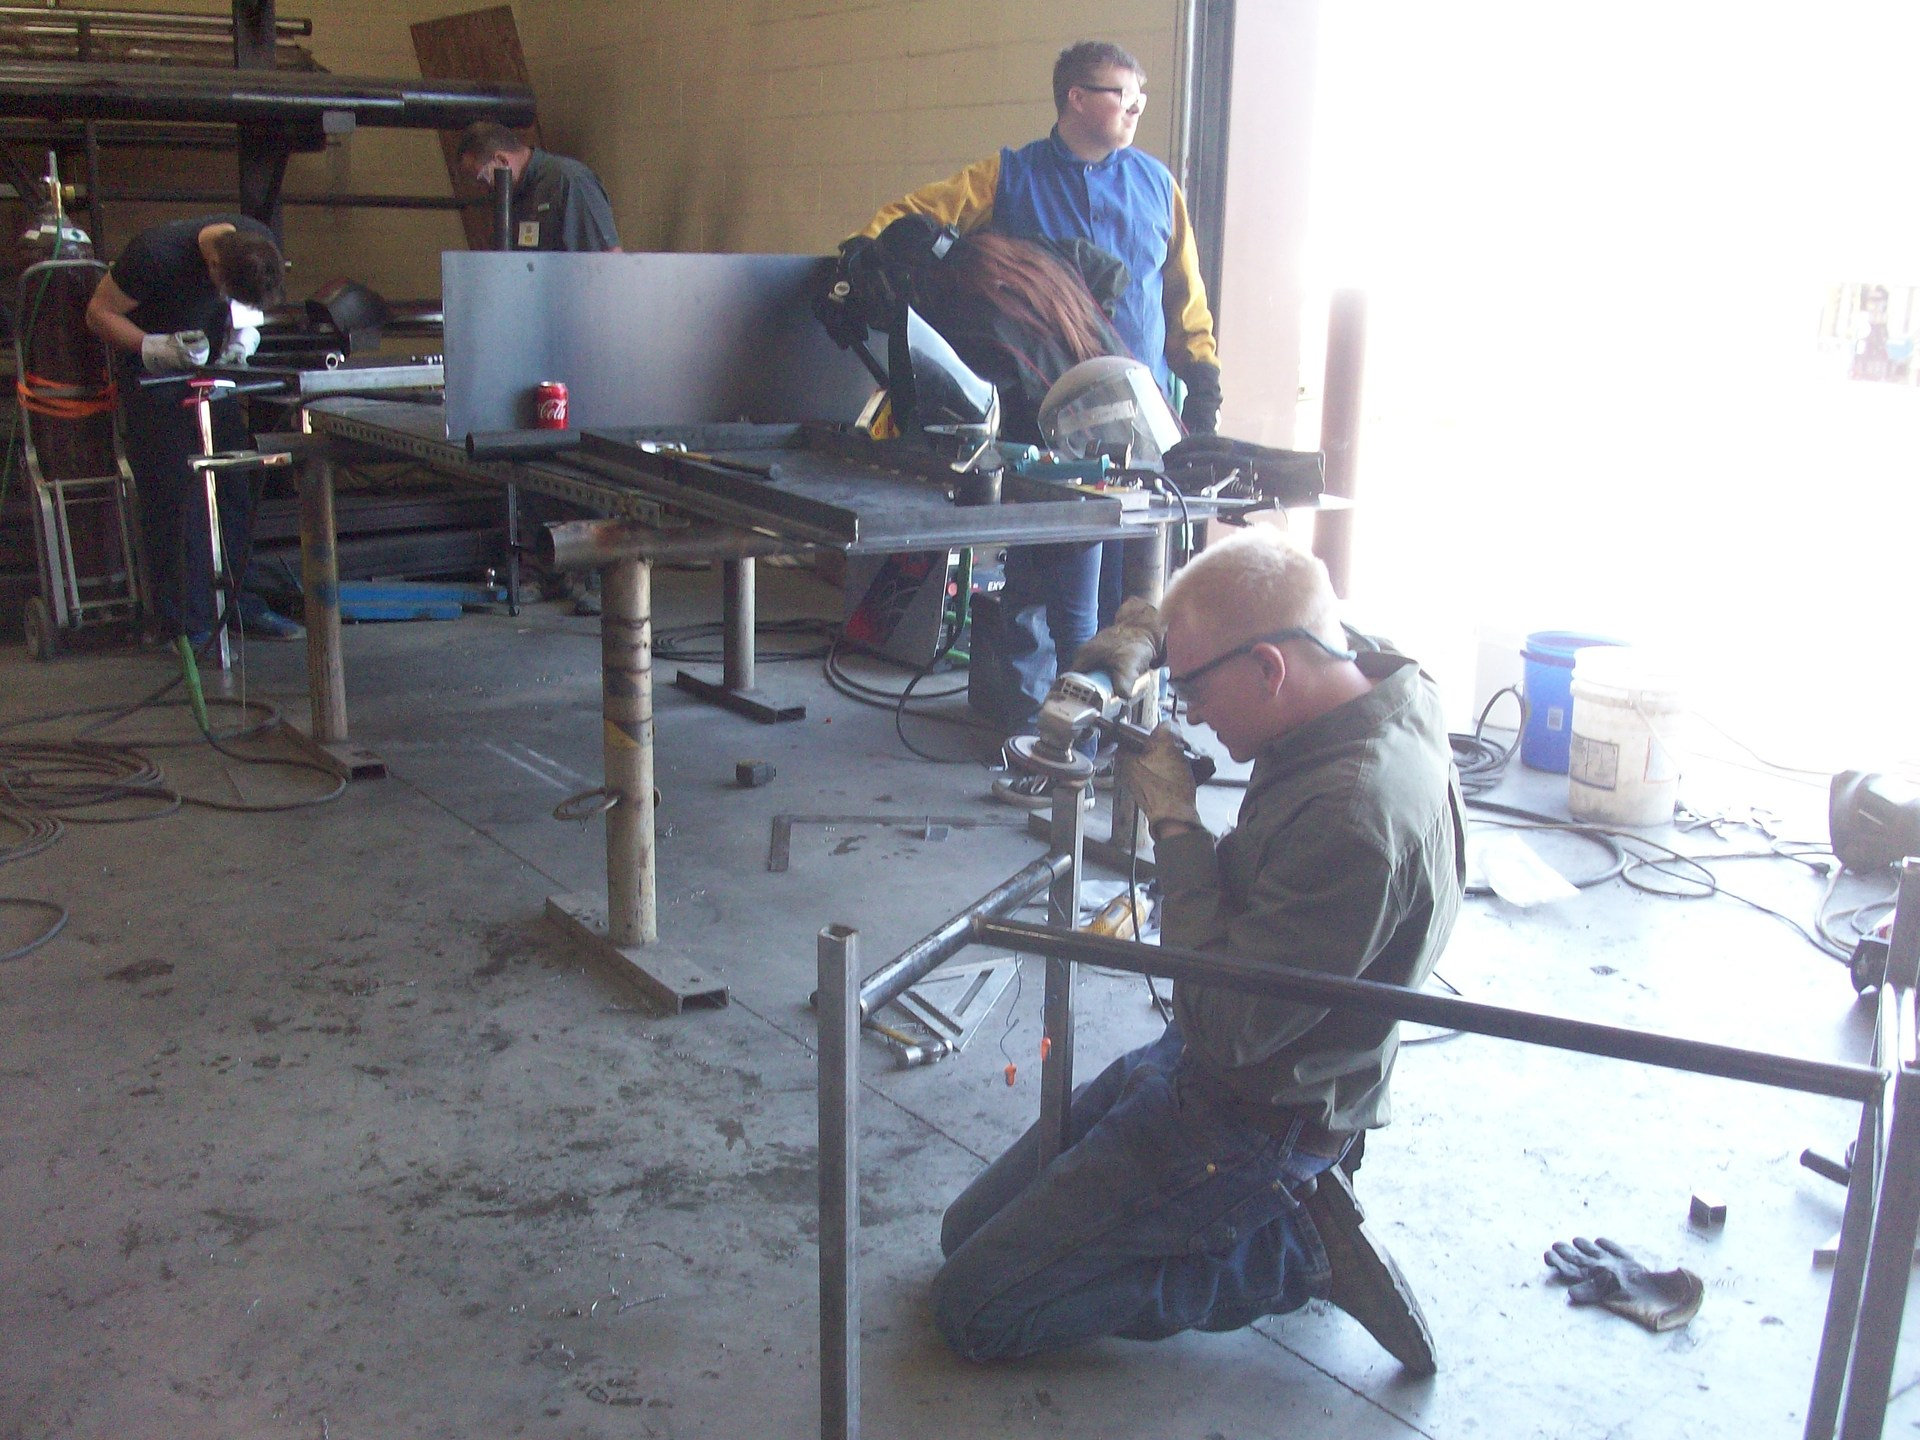 Welding Students working on their project